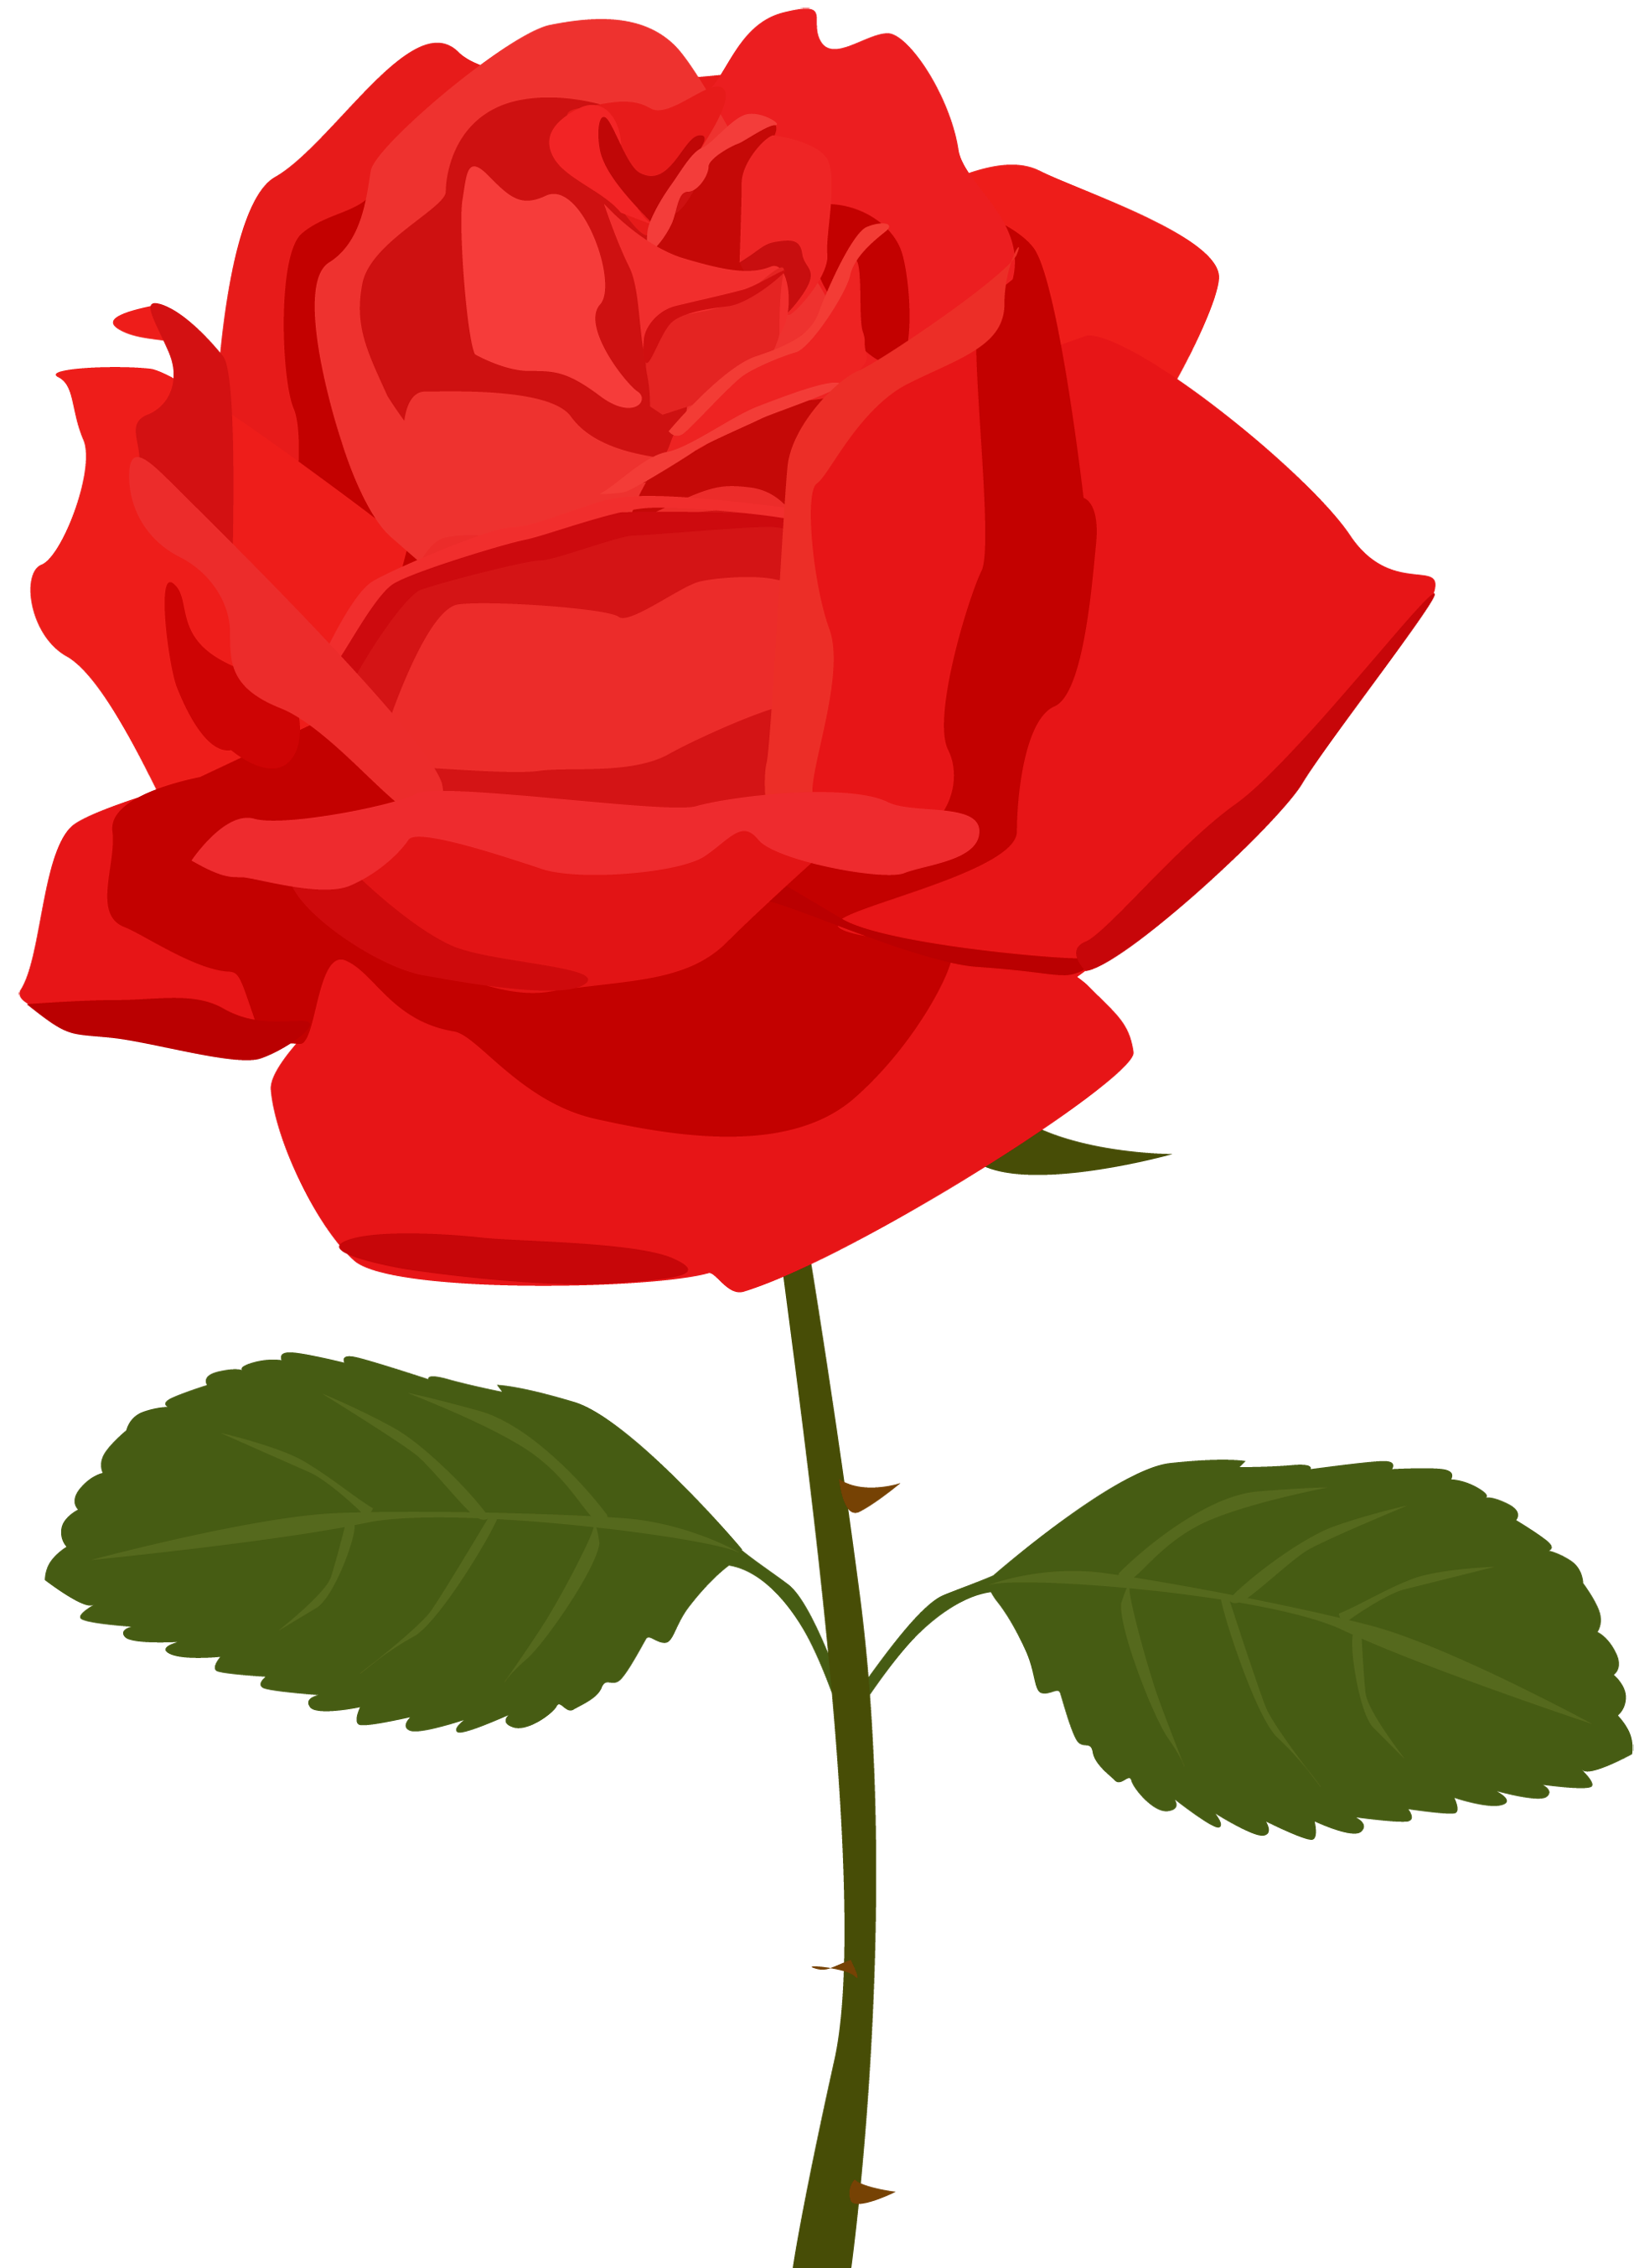 Red Rose clipart #11, Download drawings